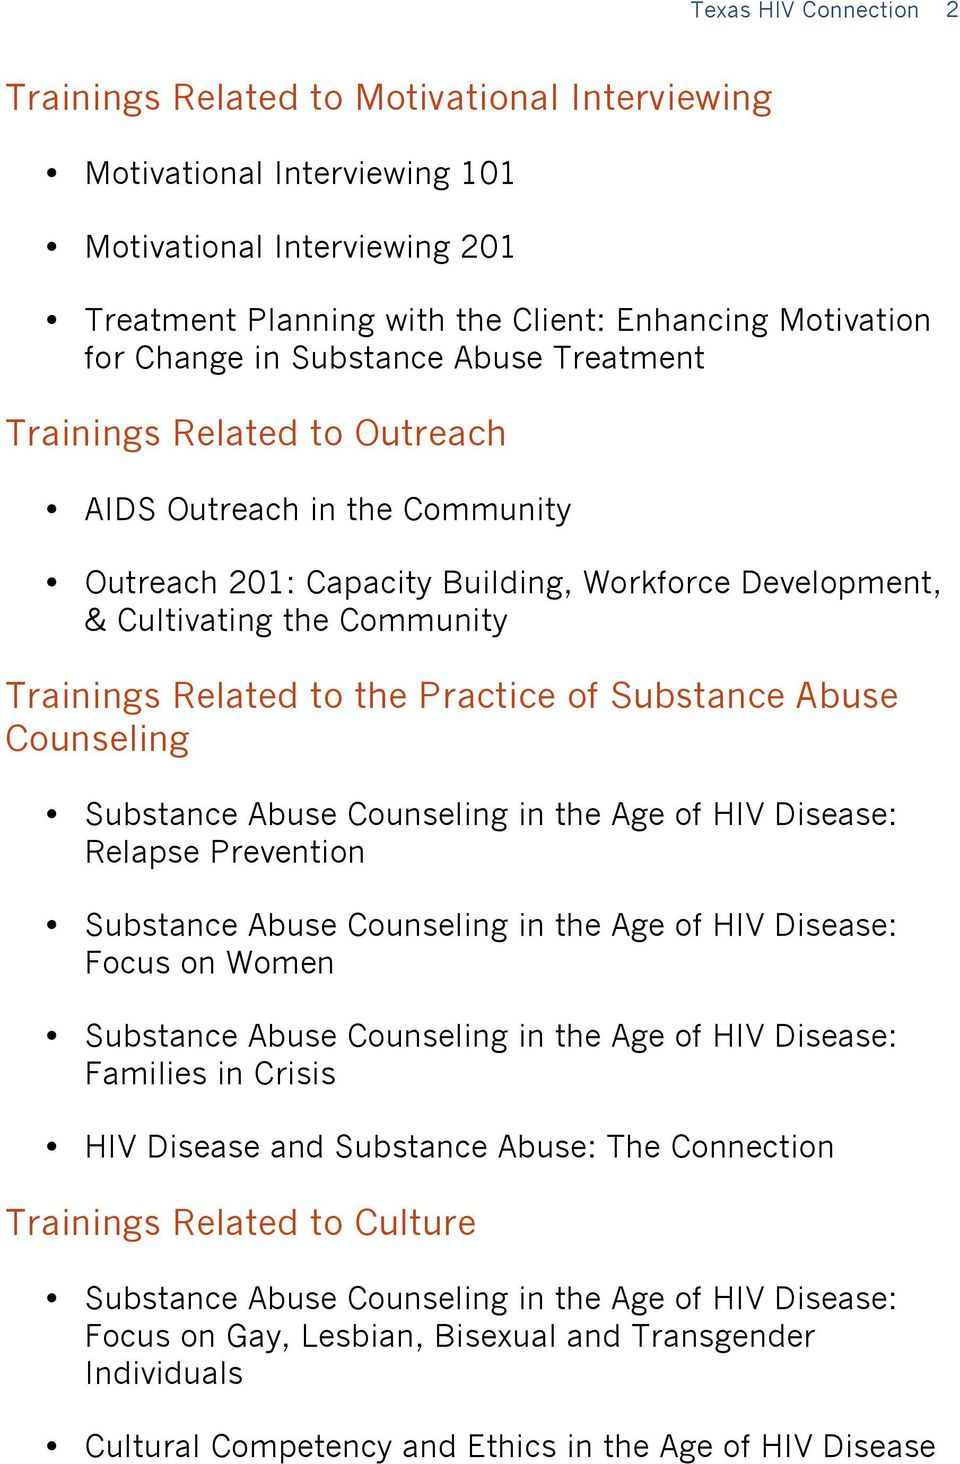 Practice of Substance Abuse Counseling Substance Abuse Counseling in the Age of HIV Disease: Relapse Prevention Substance Abuse Counseling in the Age of HIV Disease: Focus on Women Substance Abuse